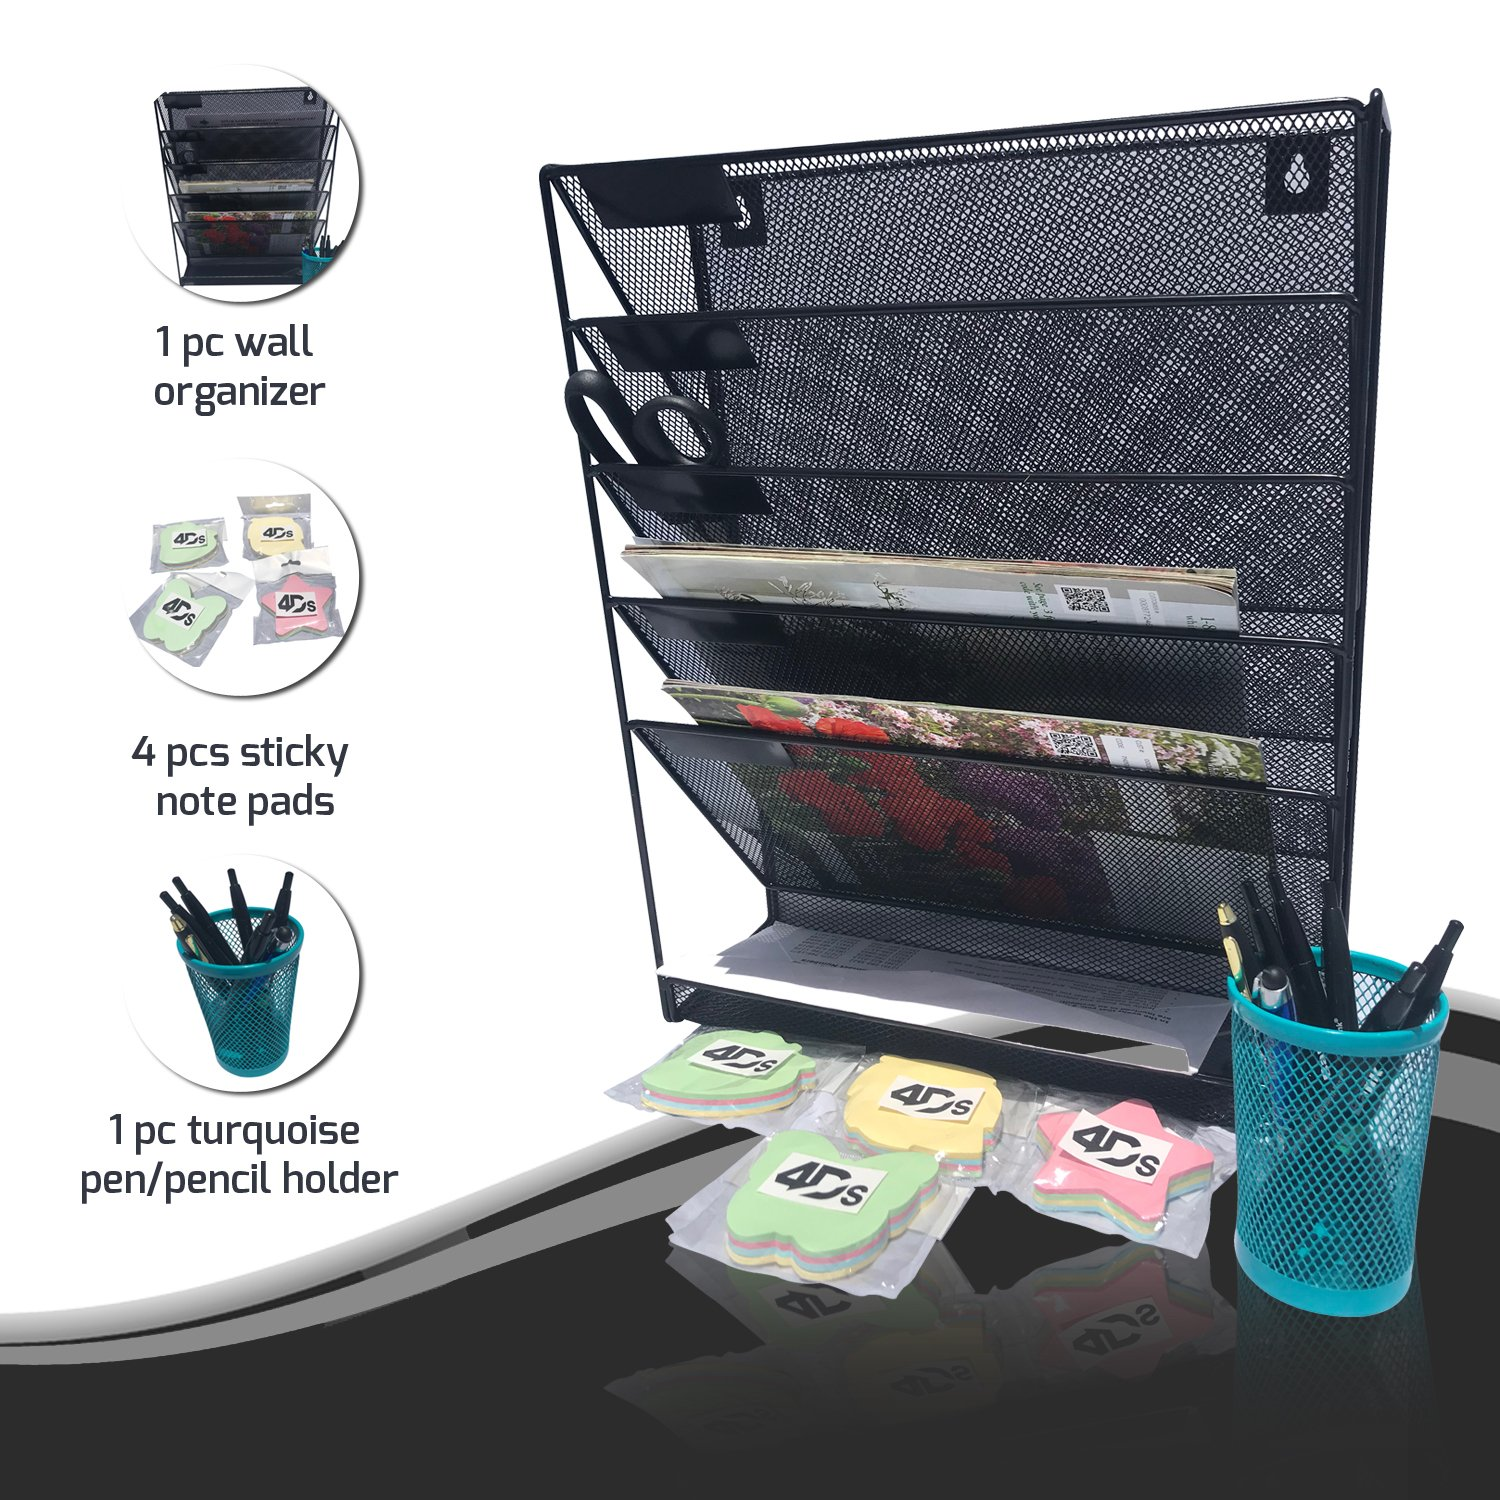 Metal Mesh Wall Organizer File Holder with Post it Sticky Note Pad and Pencil Pen Office Desk Tray to Mount Hanging Folder Paper Multiple Compartment Vertical Magazine Rack Bundle Pack